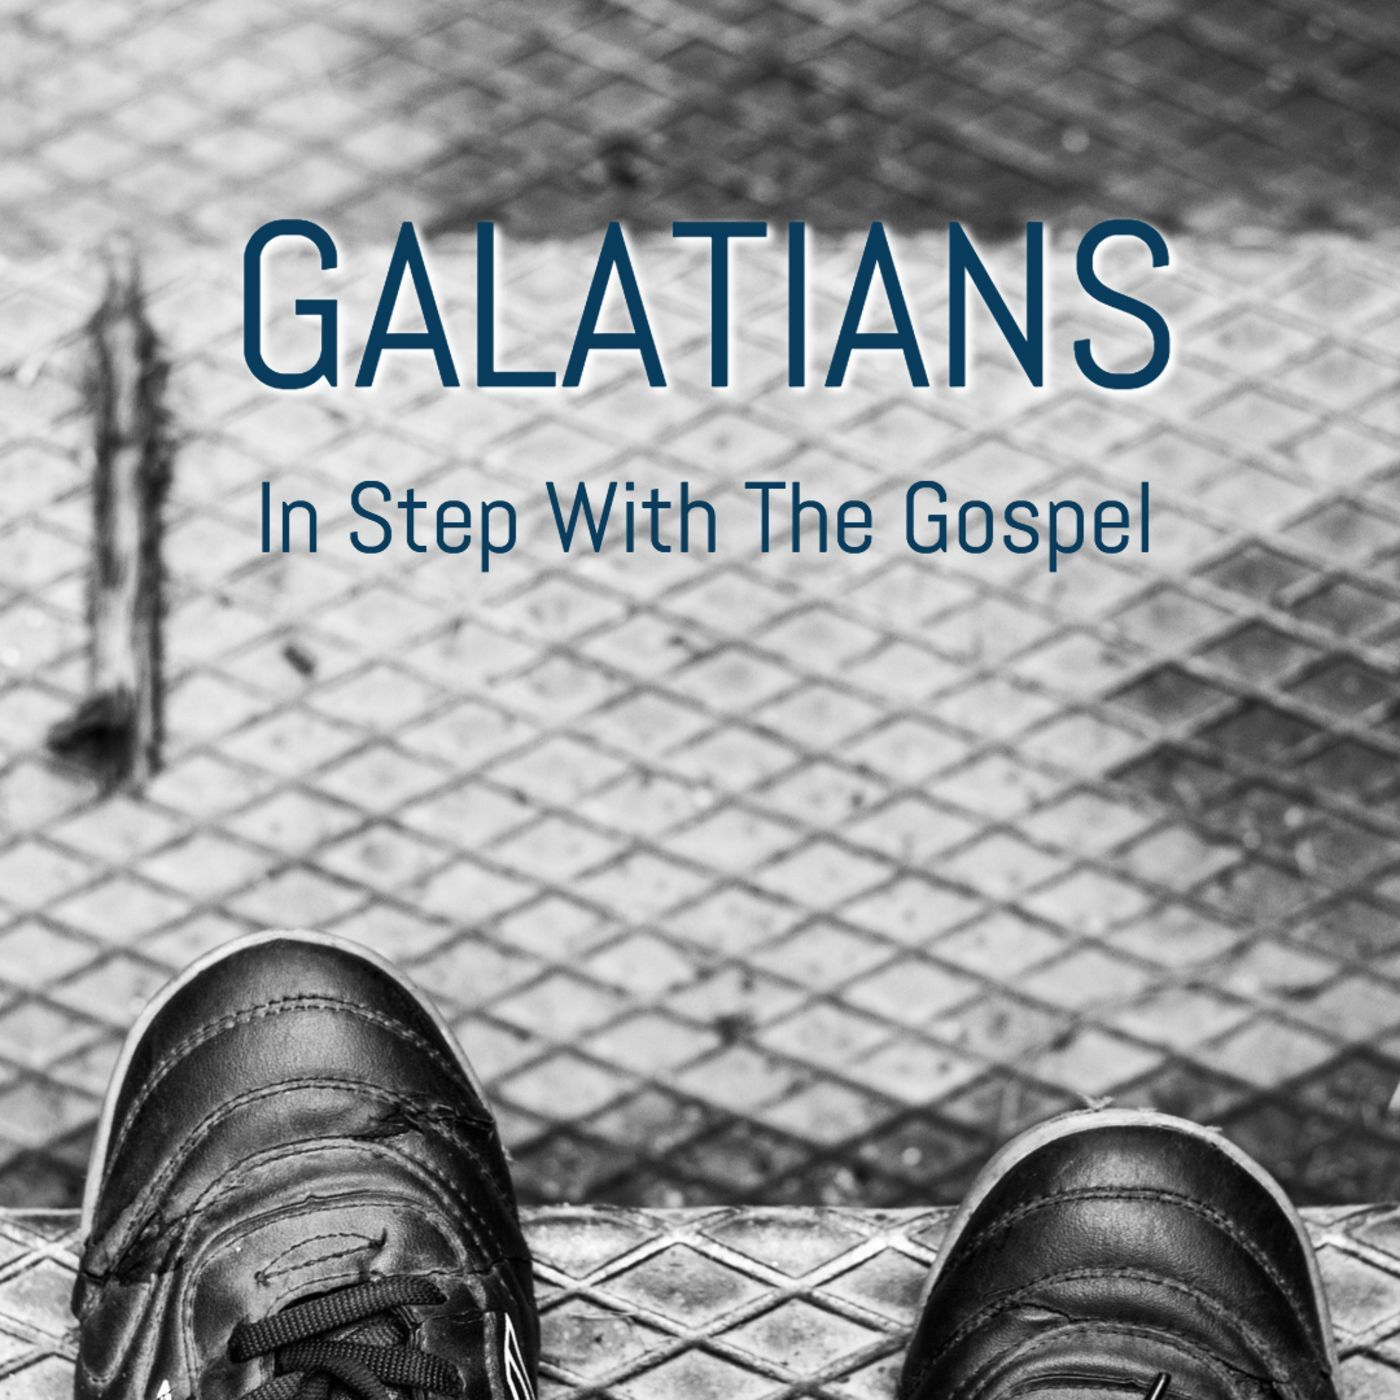 Our Relationship To The Law - Galatians 3:23-29